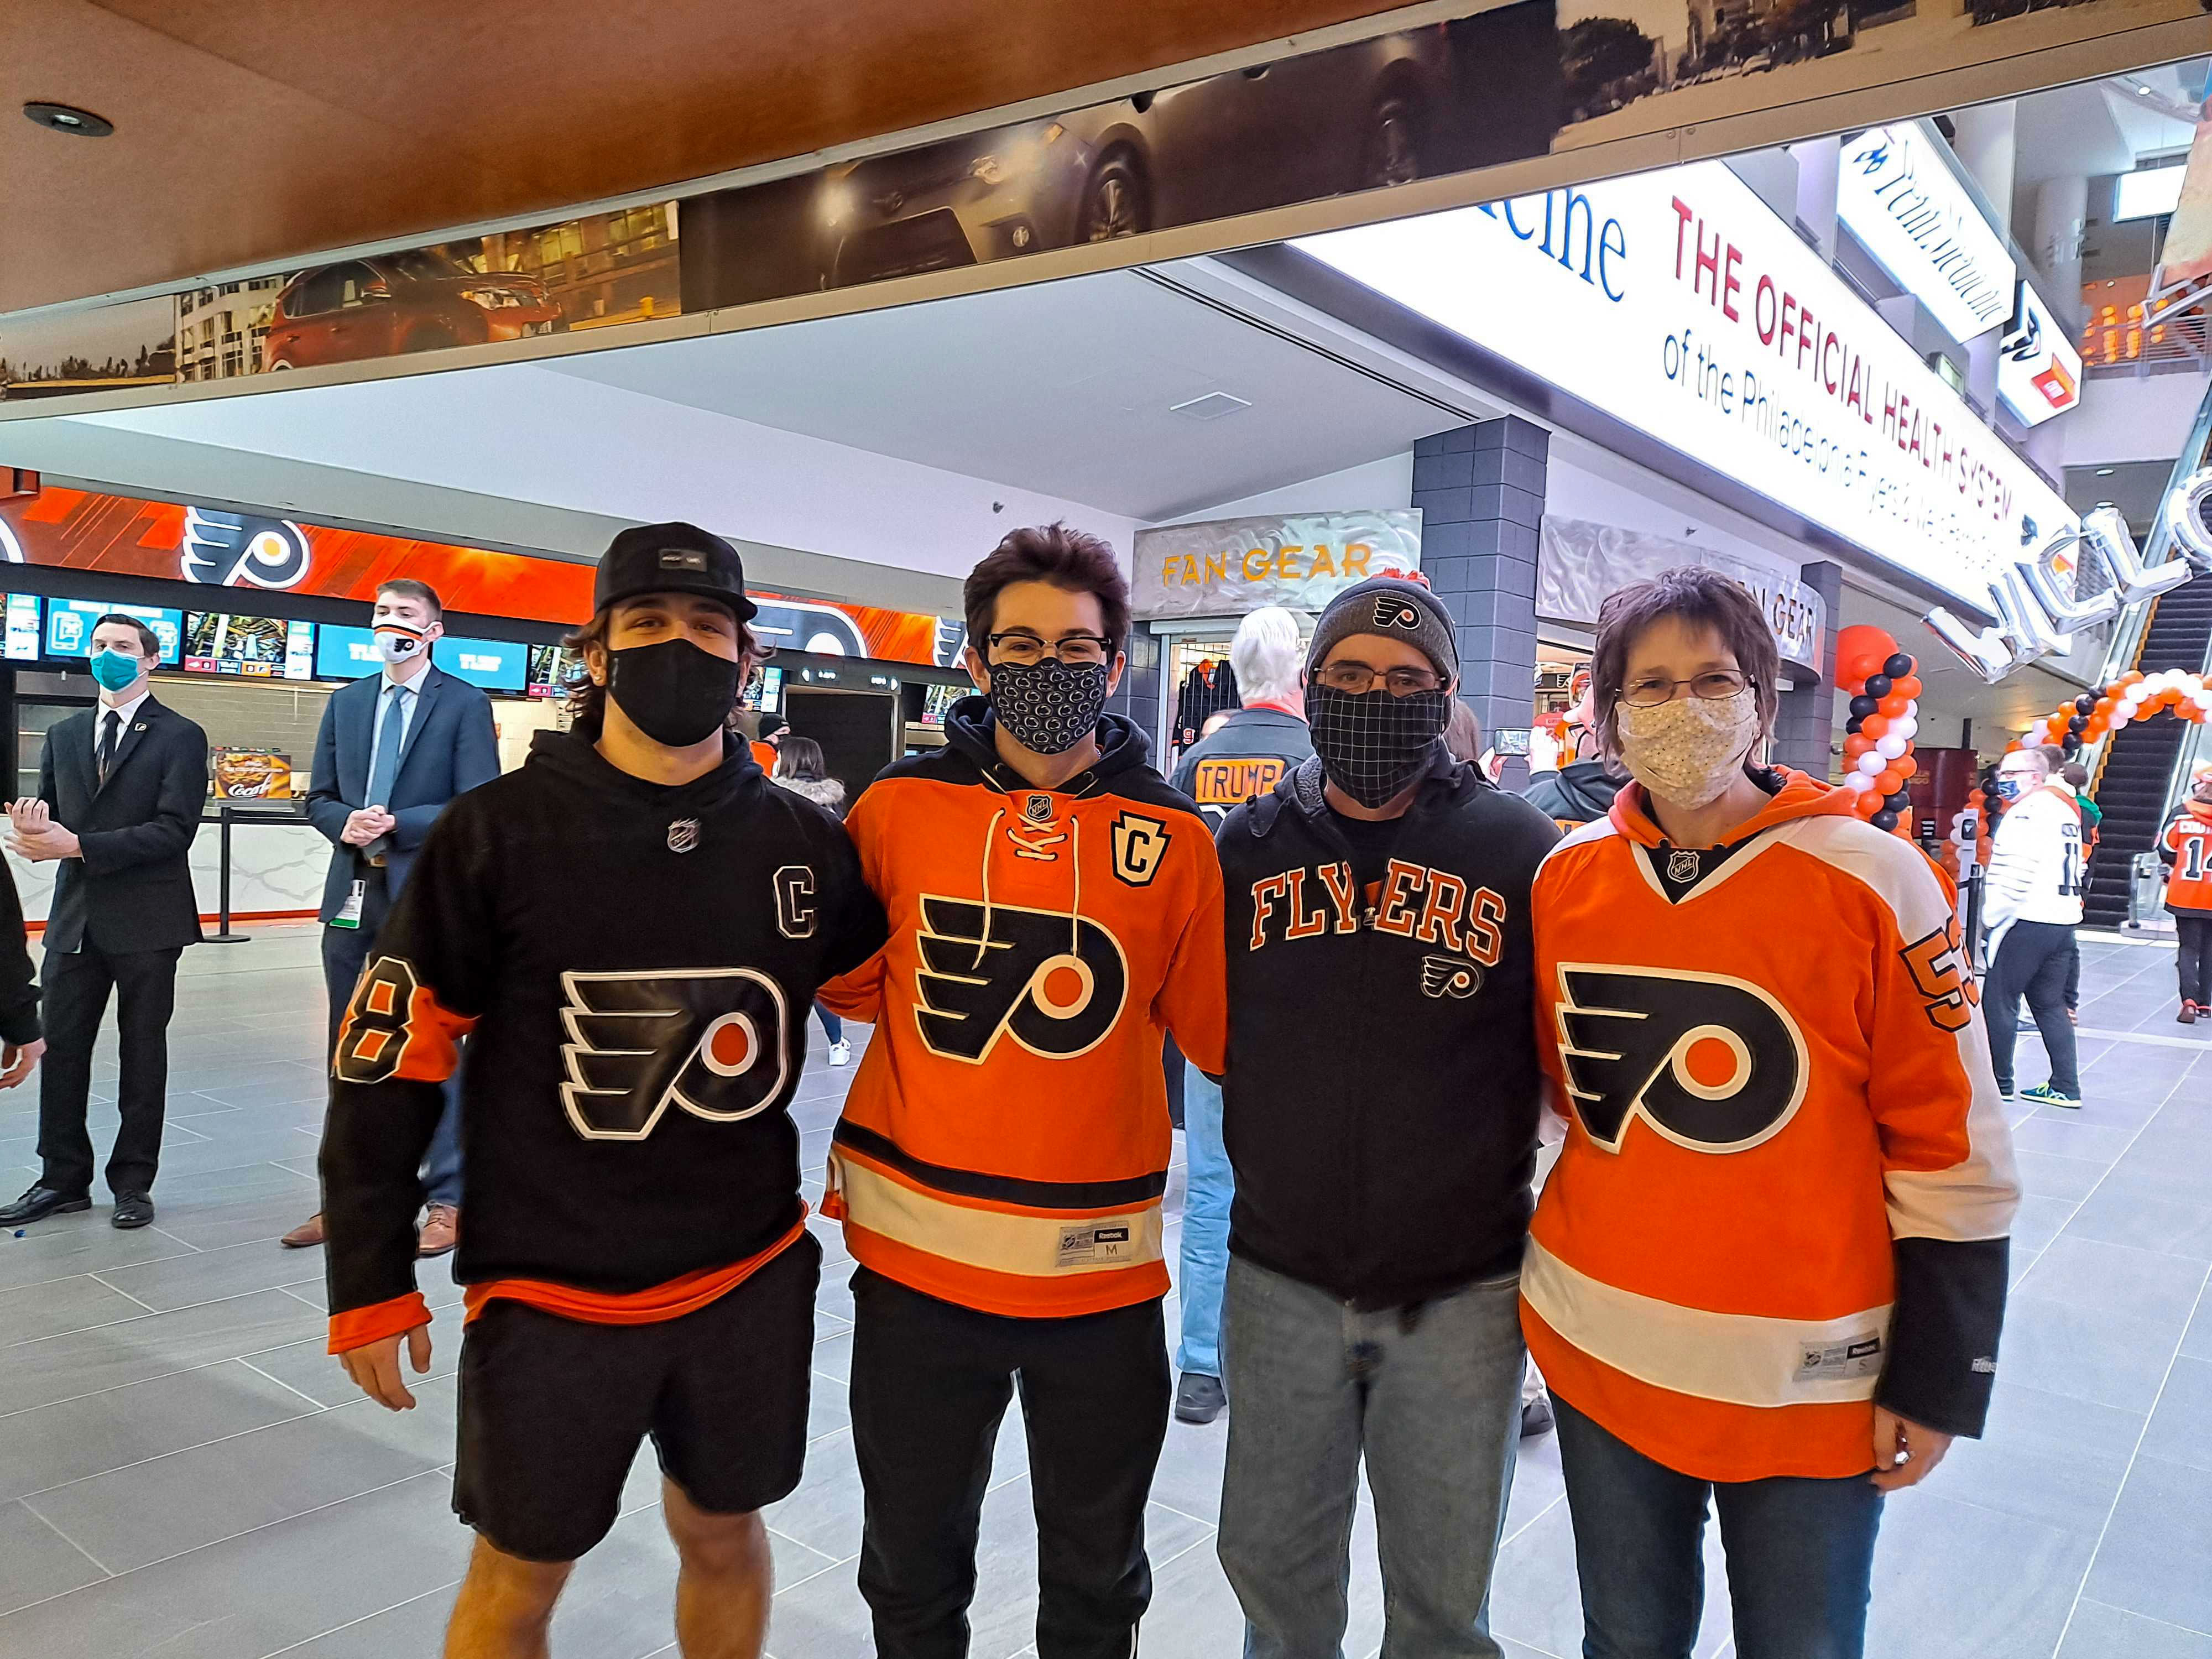 A group of Flyers fans stand side-by-side inside Wells Fargo Center